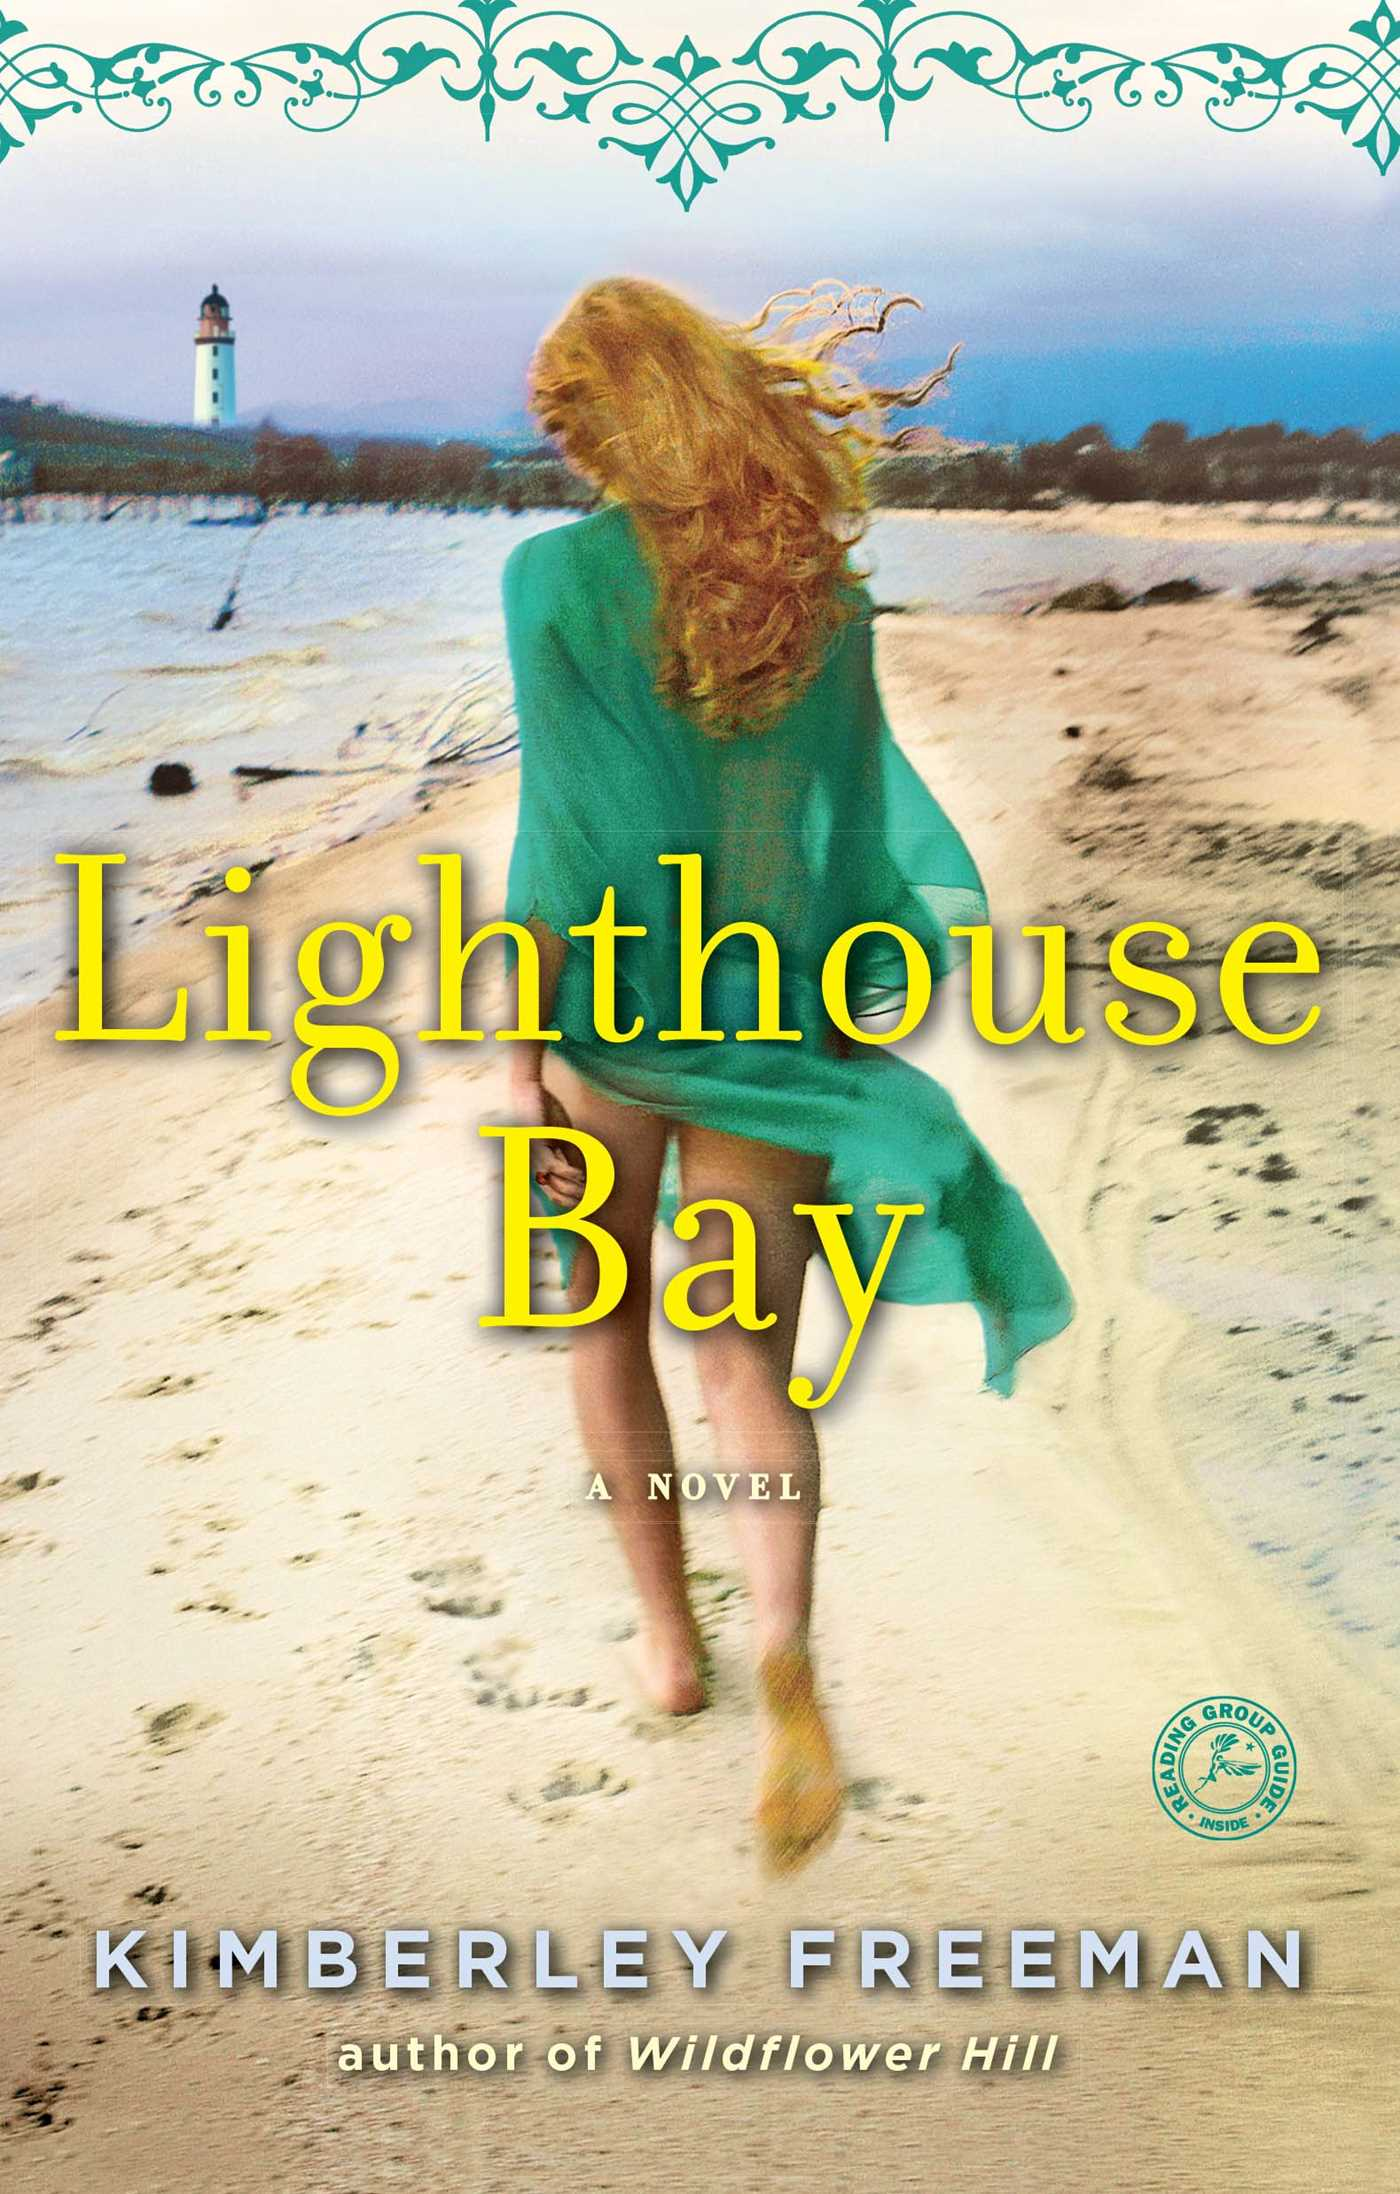 Lighthouse bay 9781451672794 hr